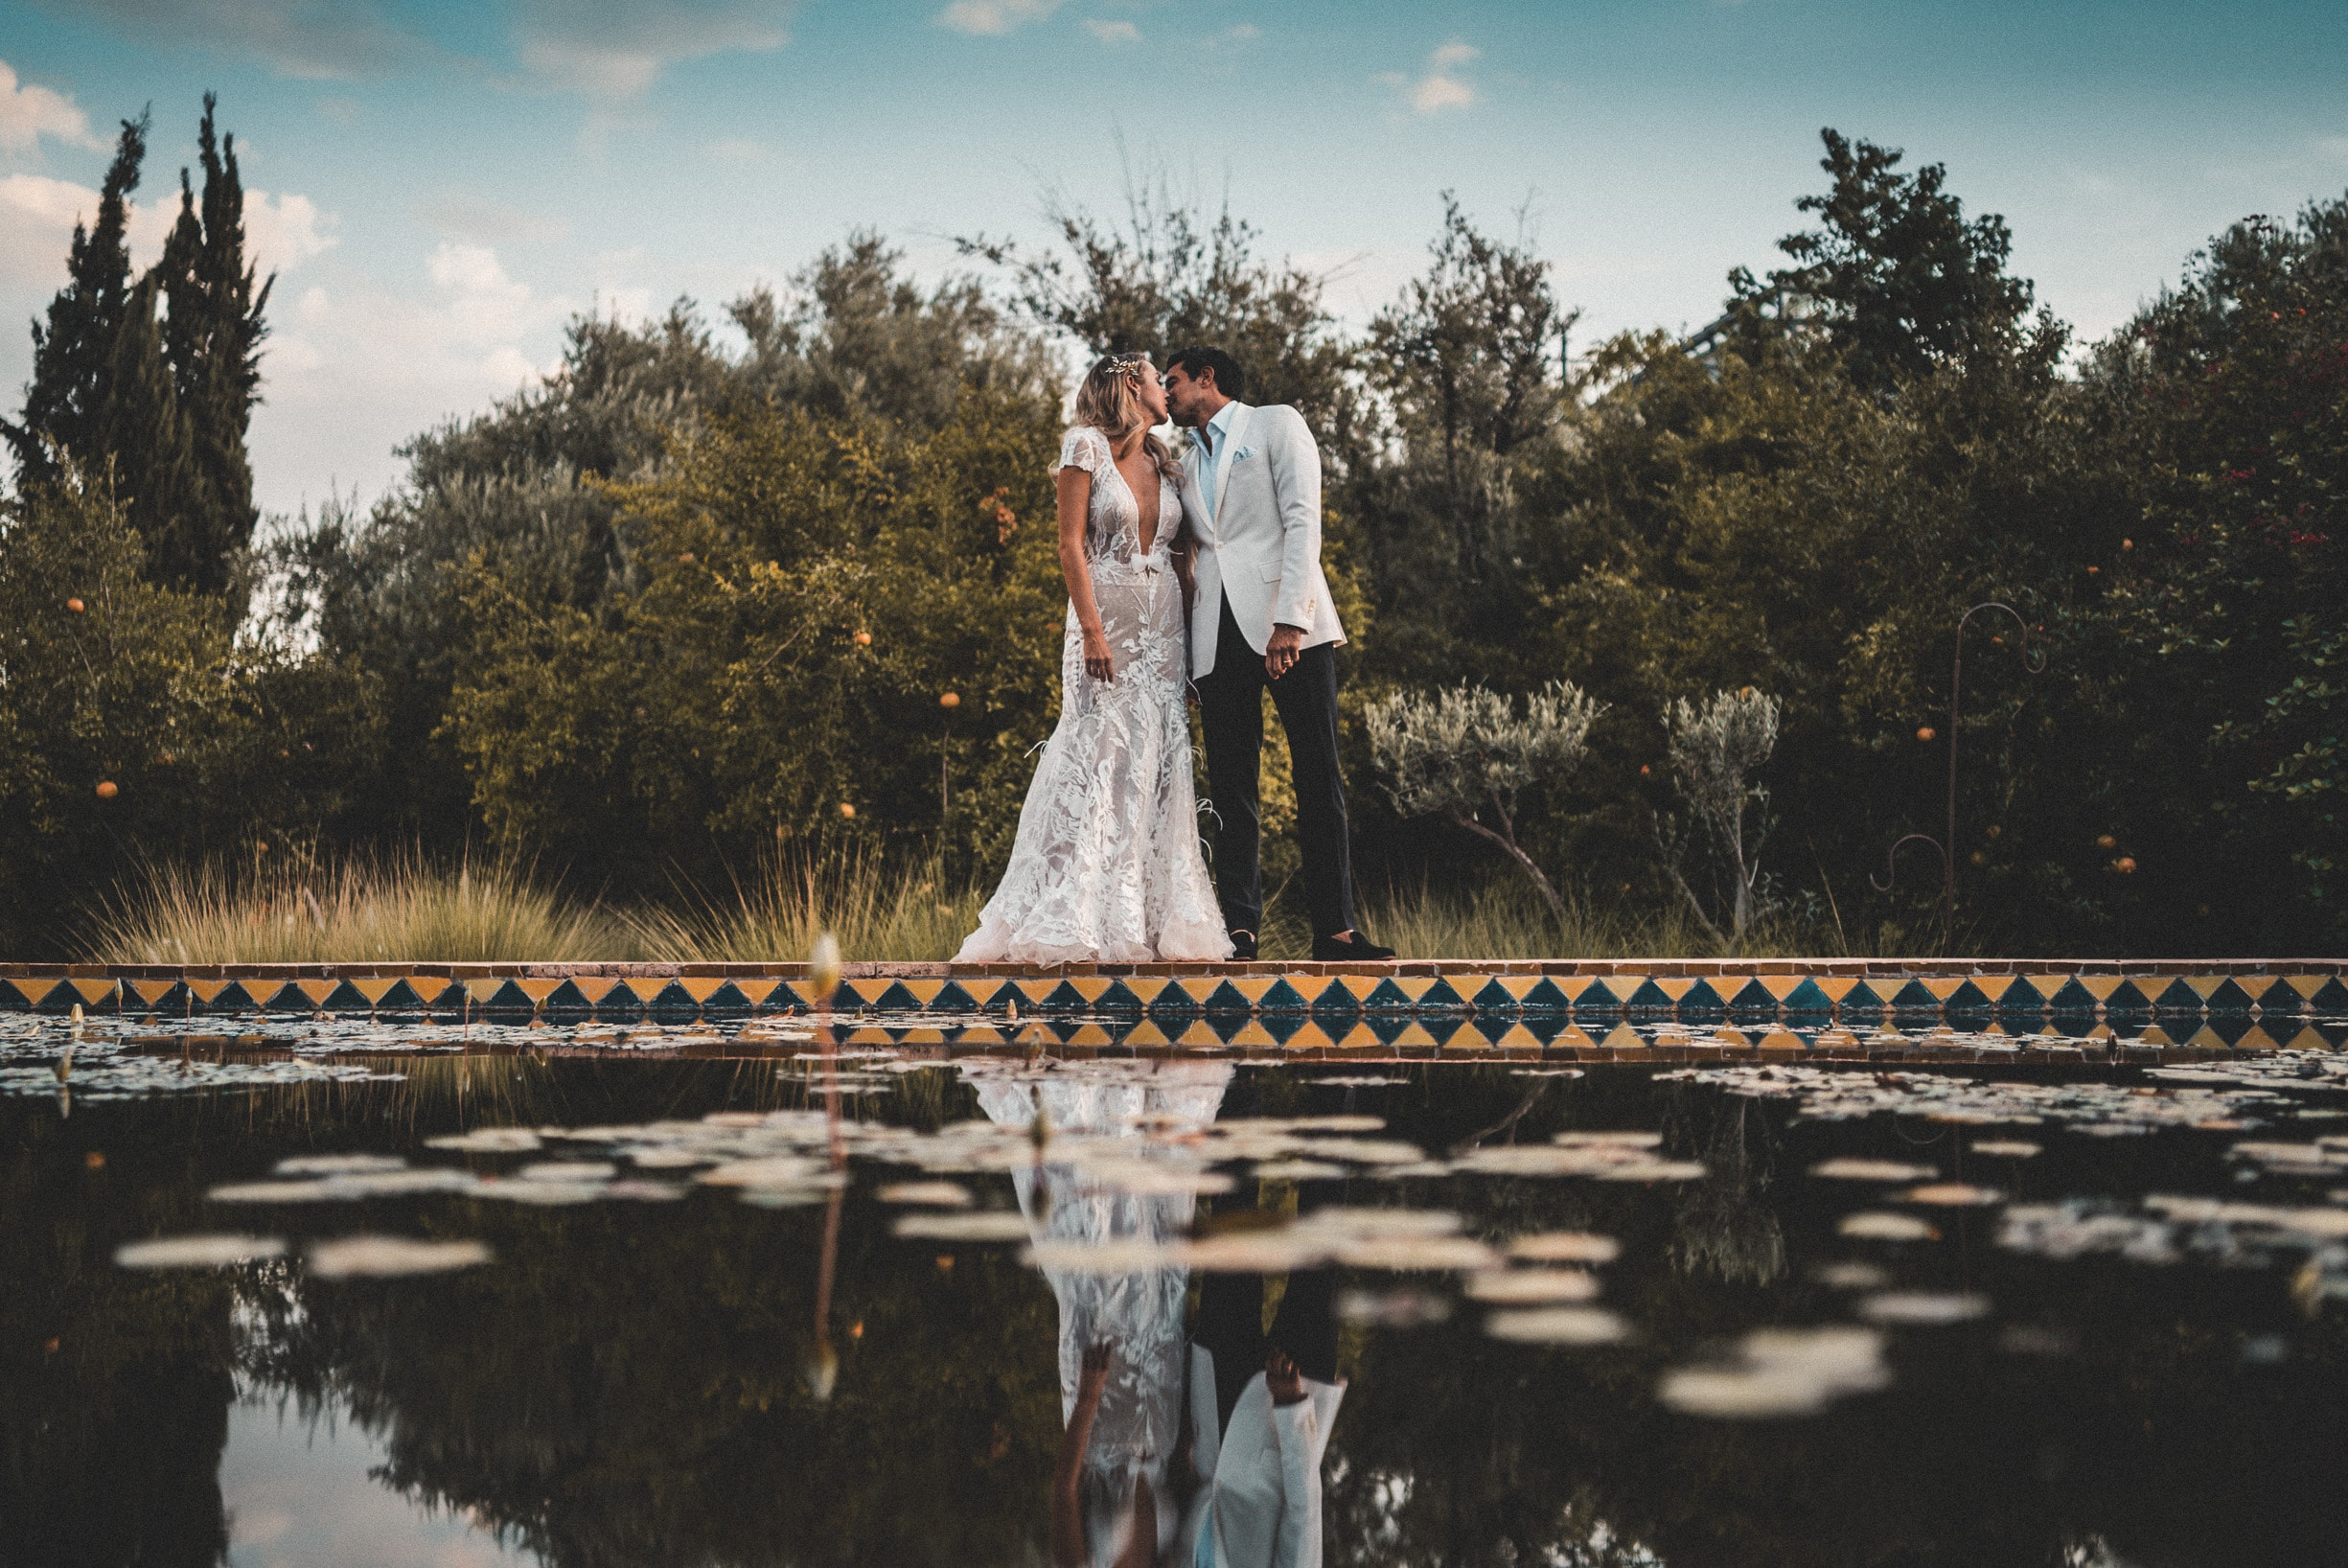 Wedding-Videographer-Beldi Marrakech--23